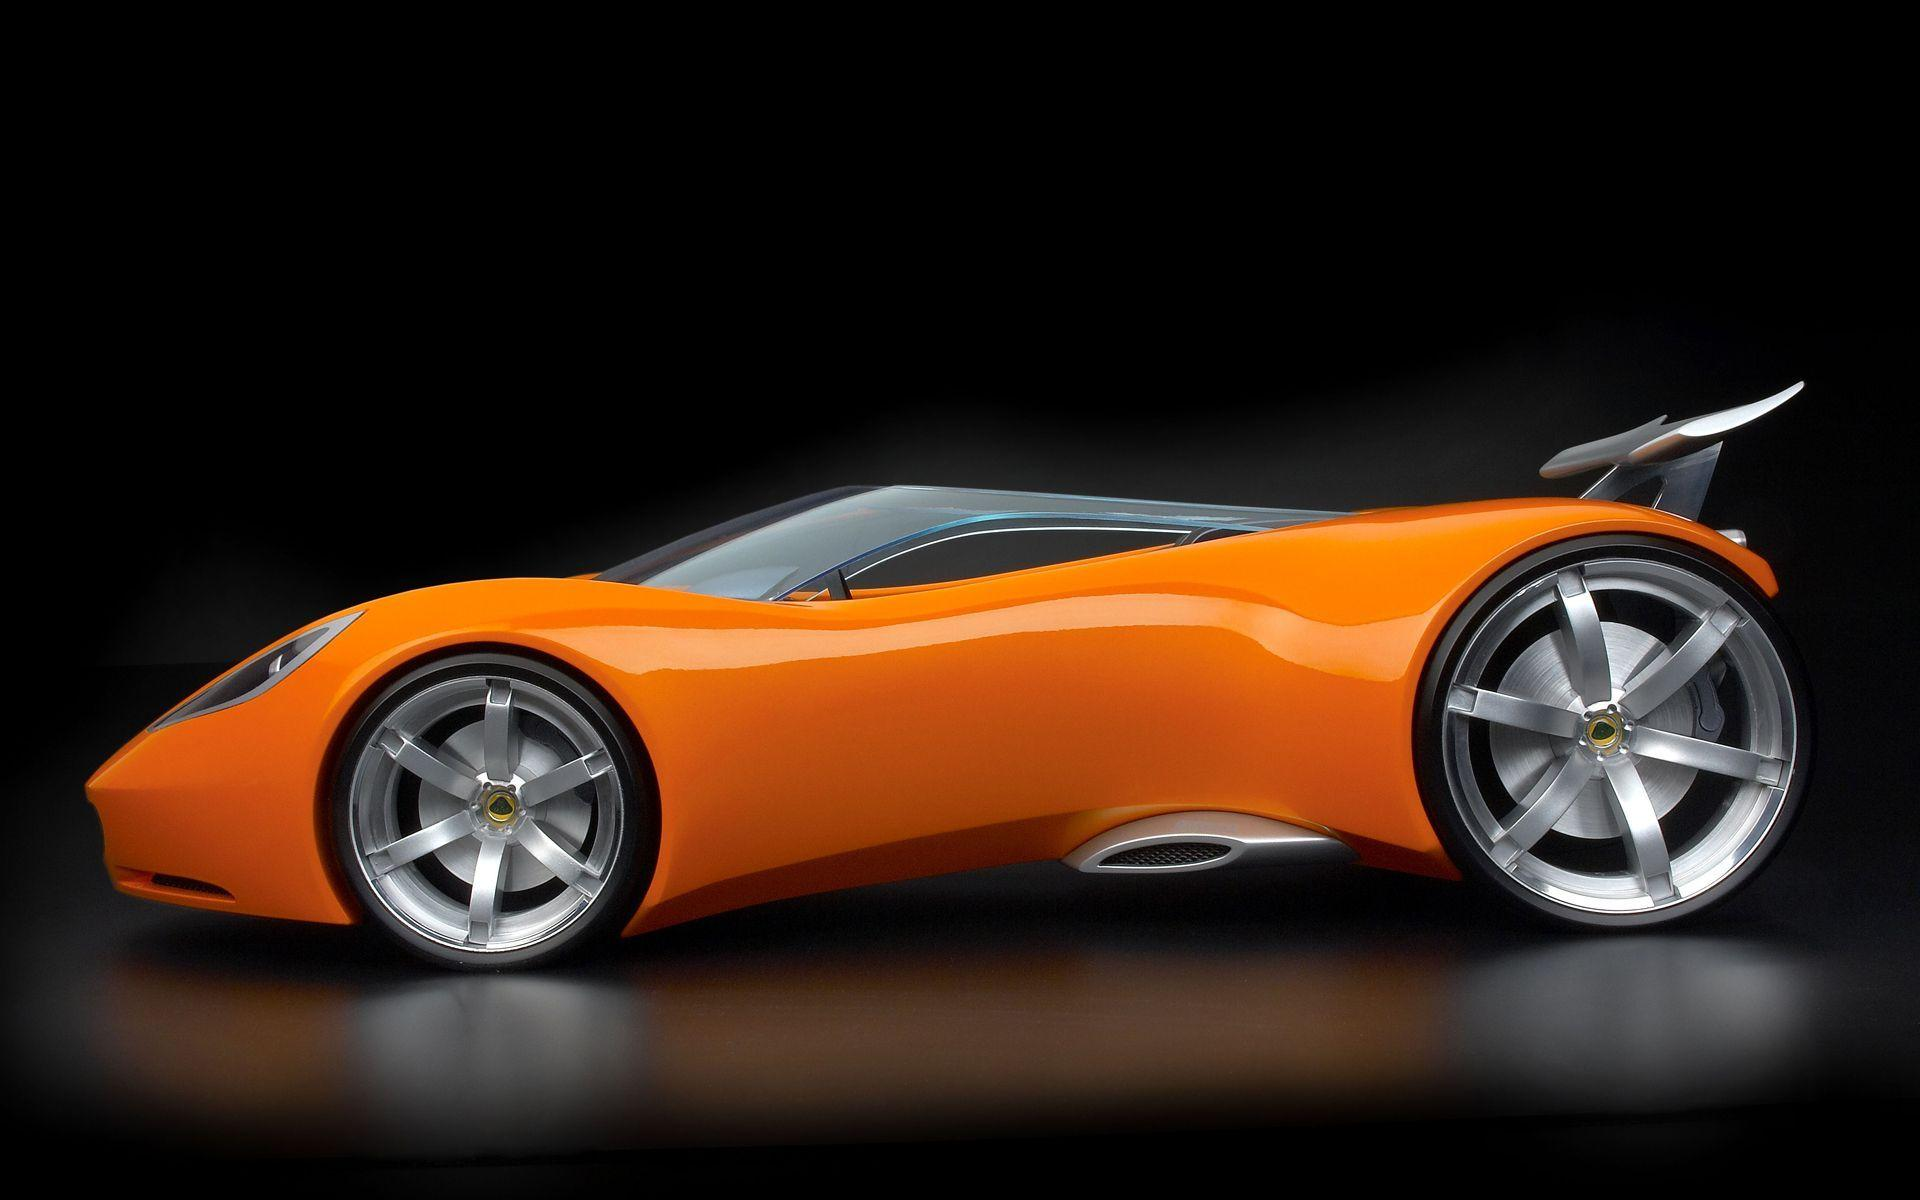 Lotus Concept Car Wallpapers | HD Wallpapers